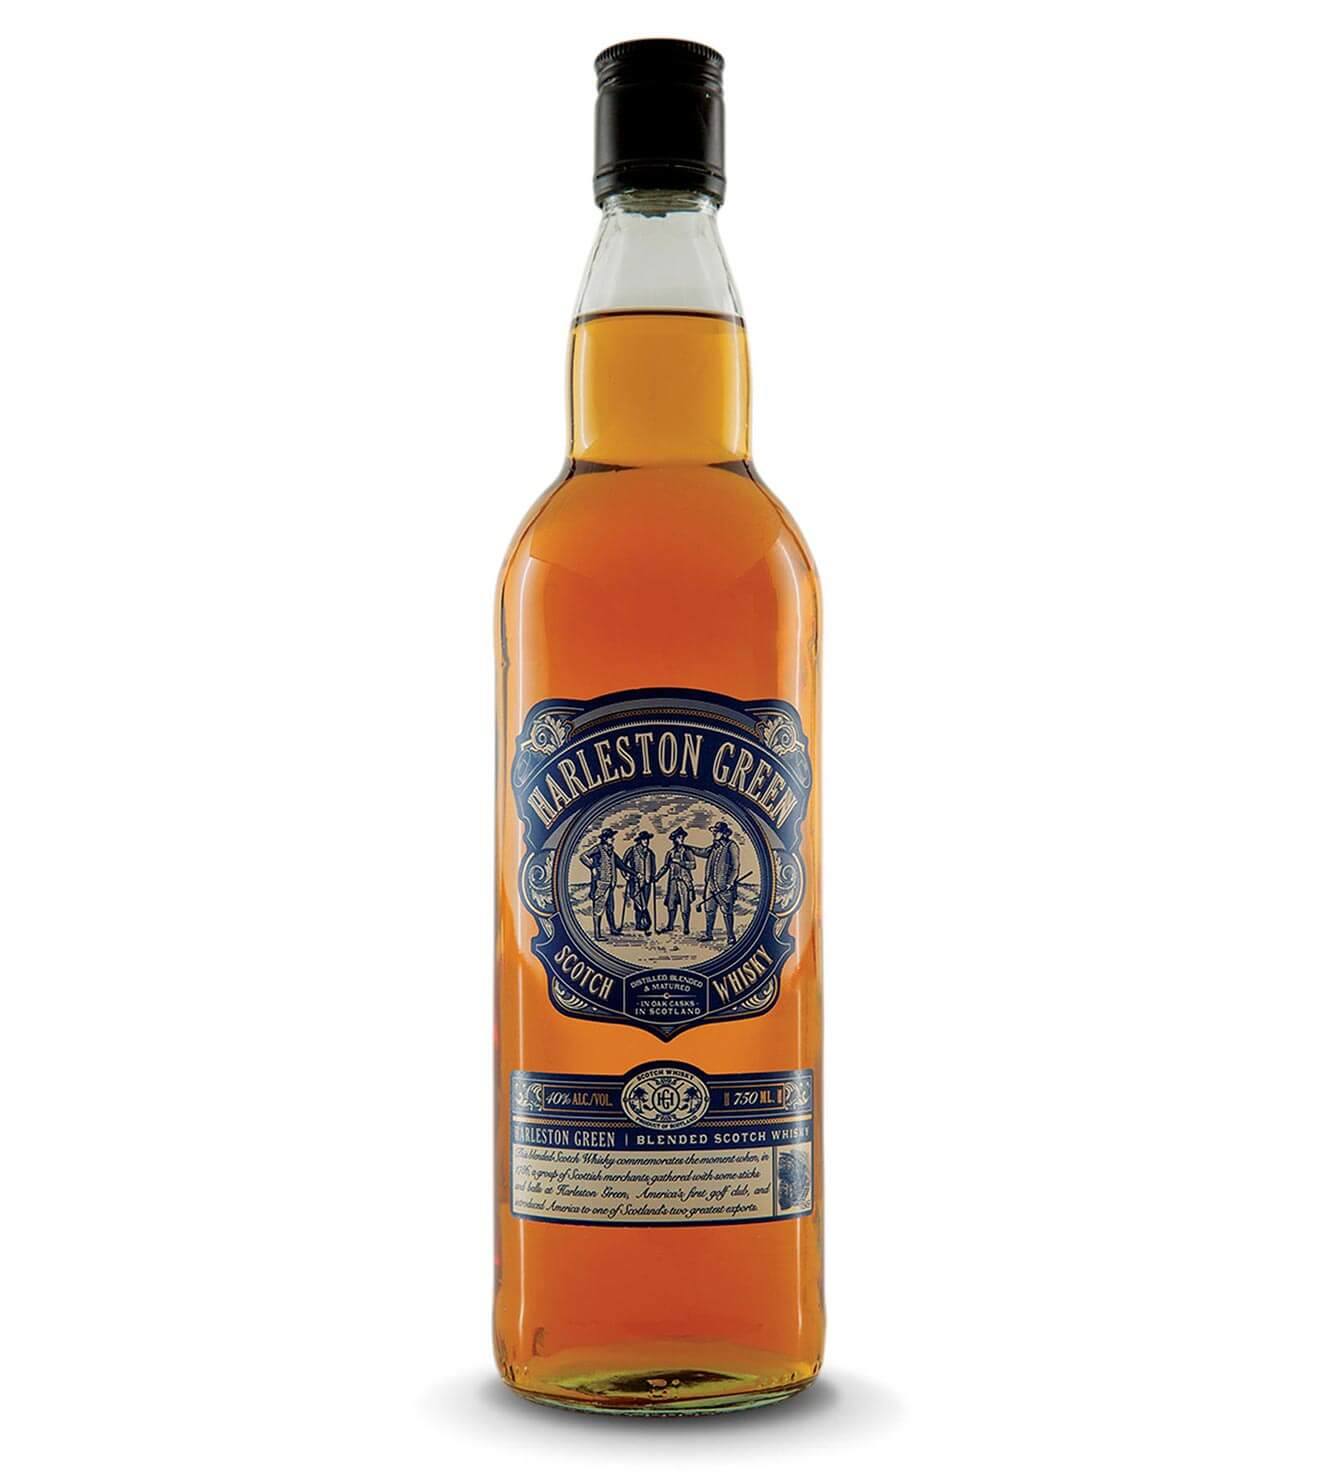 Harleston Green Scotch Whisky, bottle on white